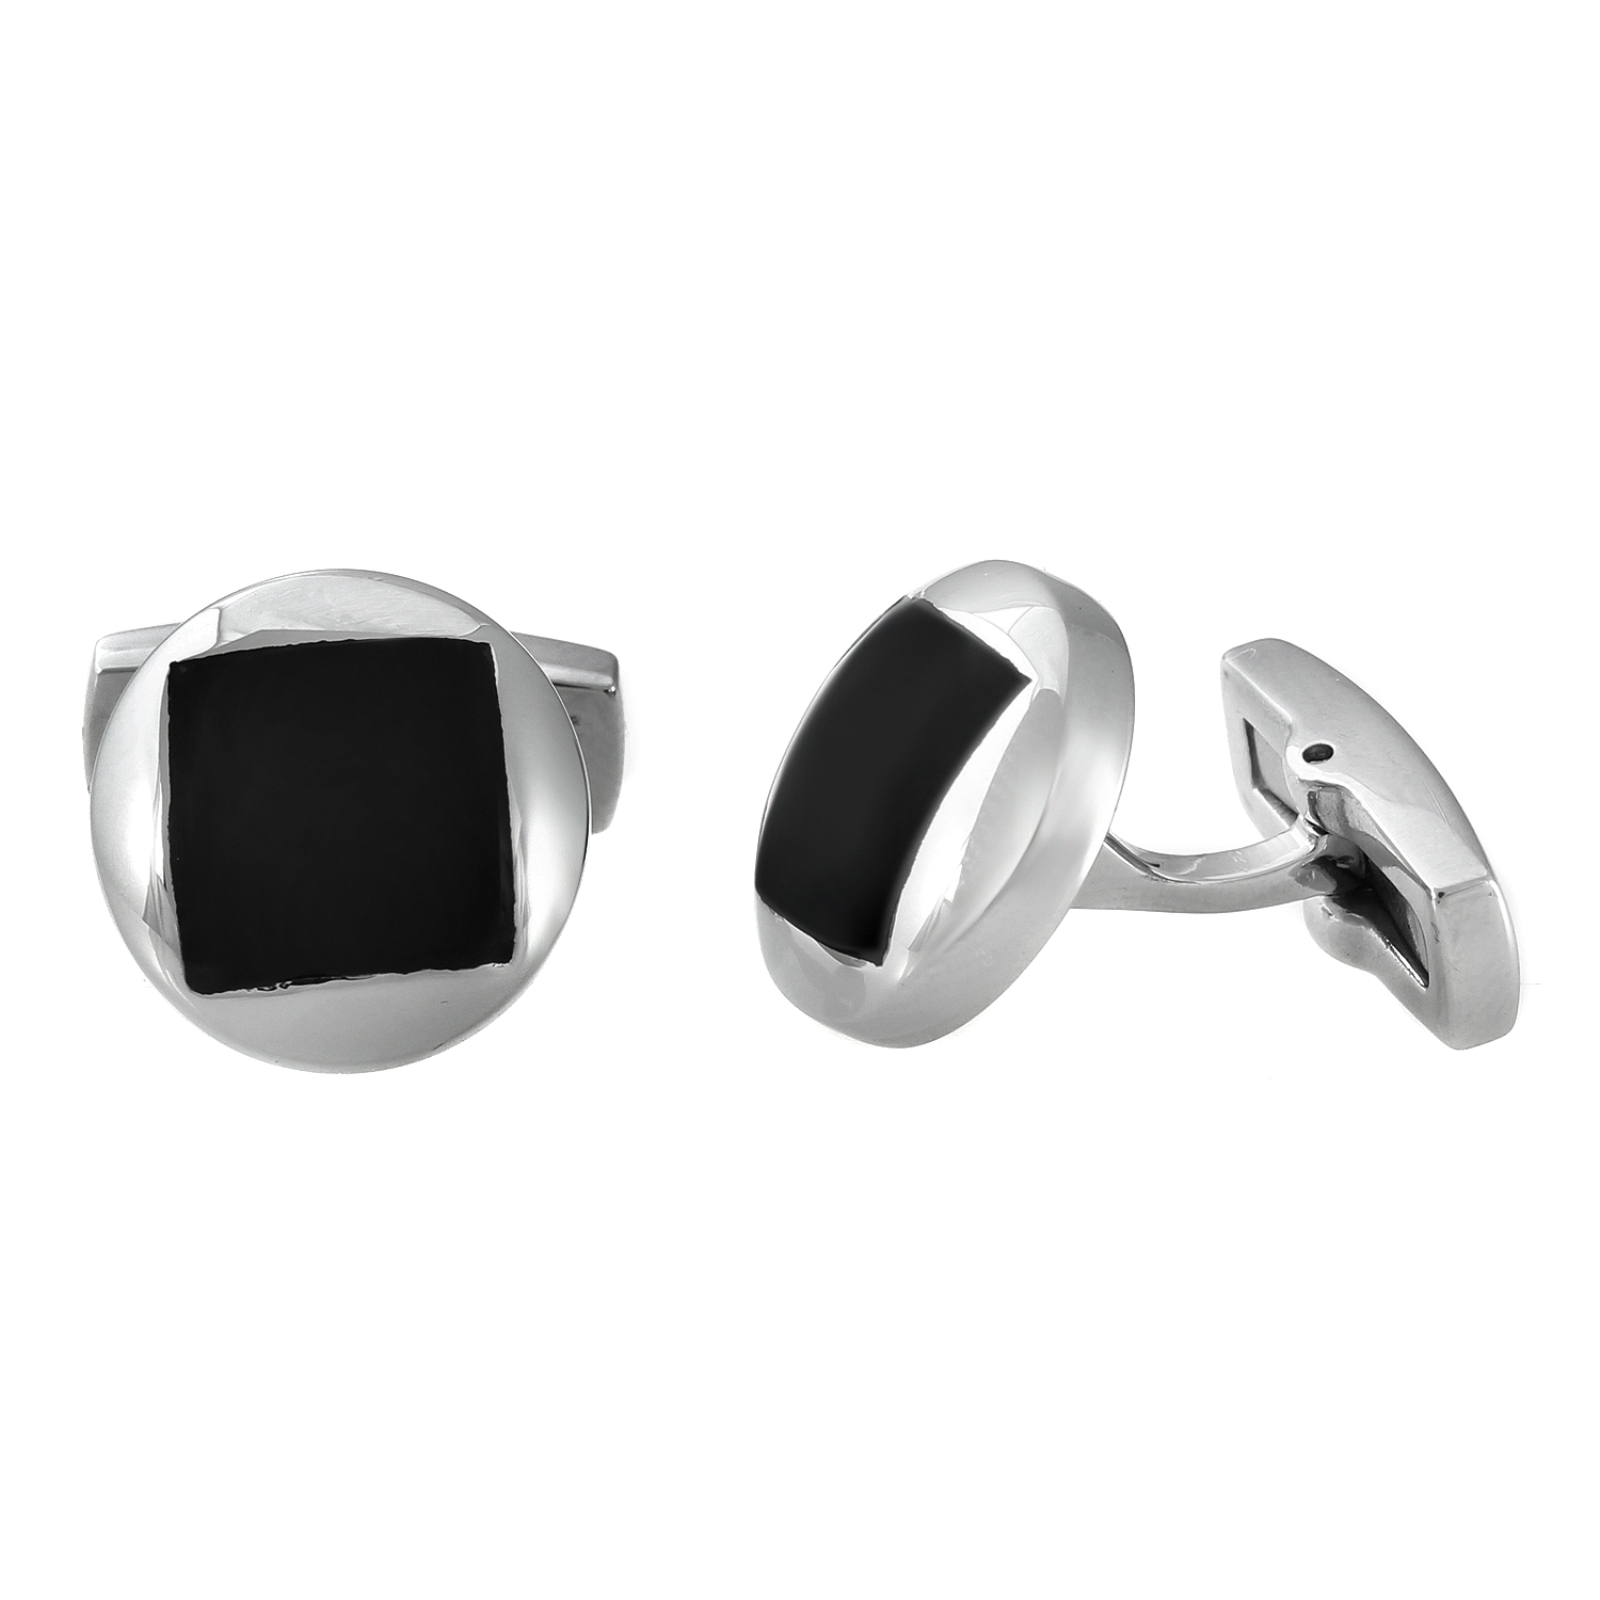 Stainless Steel Onyx Cuff Links PartNumber: 04437840000P KsnValue: 5859613 MfgPartNumber: STC074